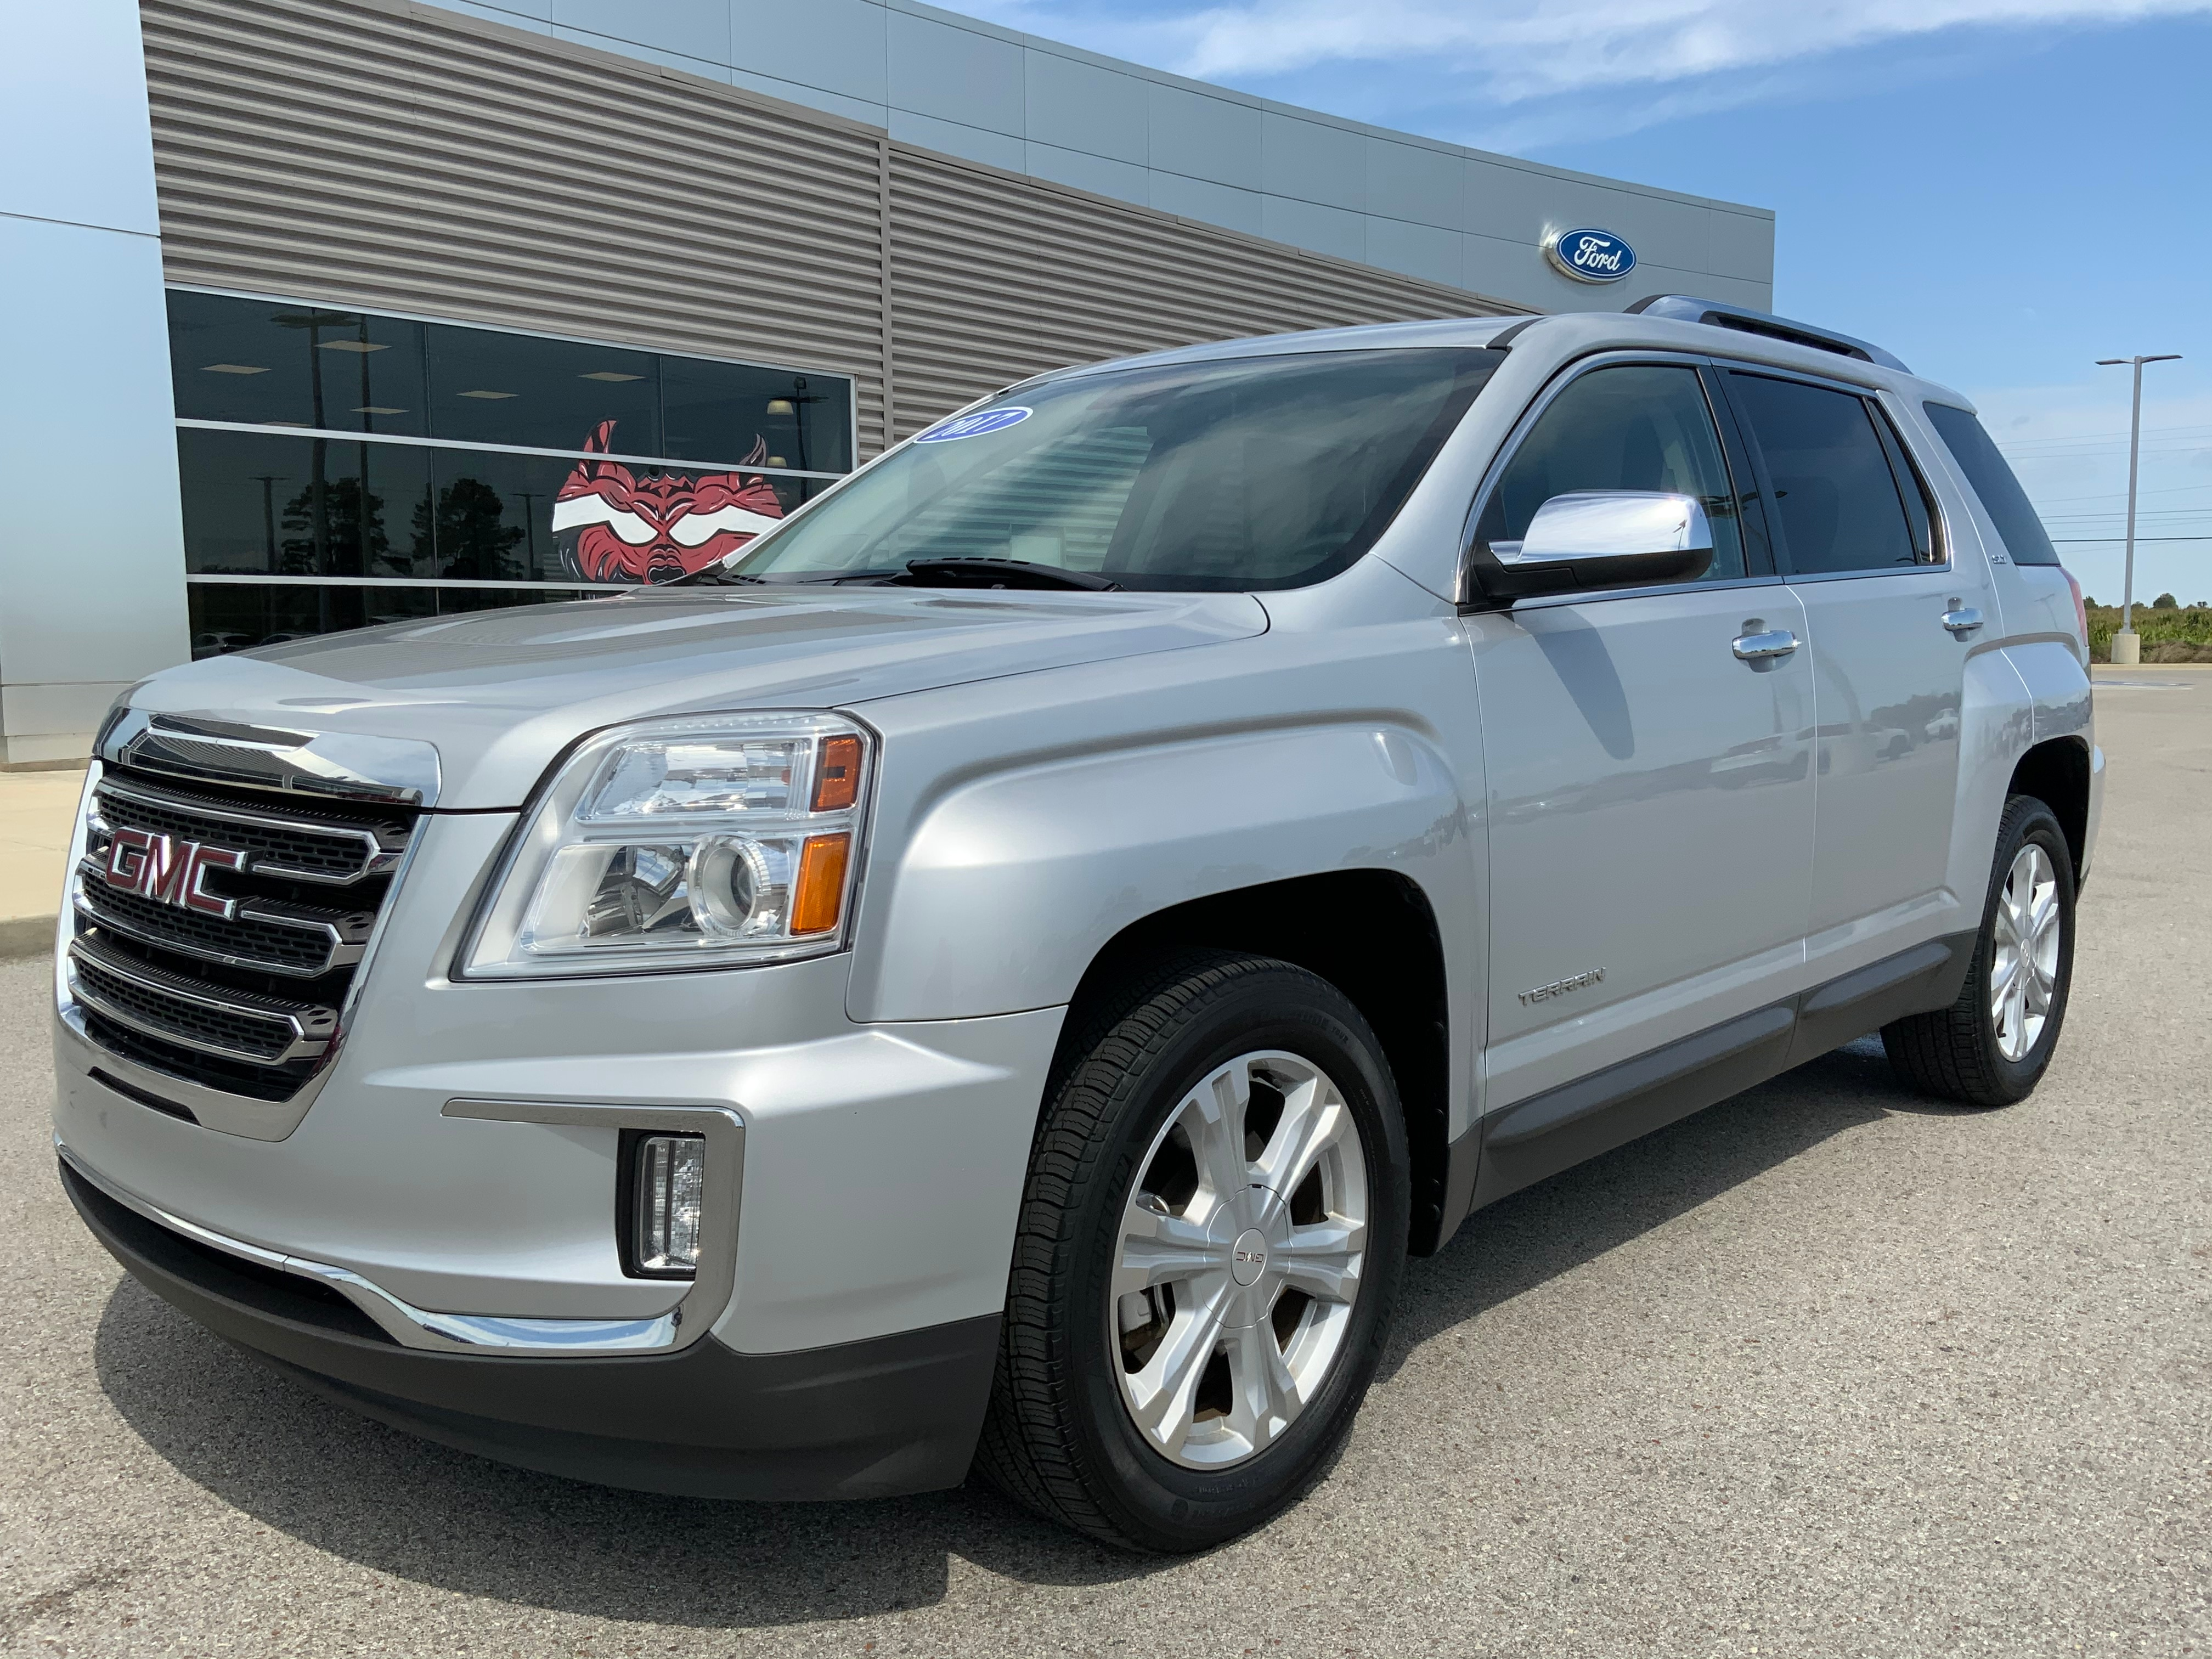 Used 2017 GMC Terrain SLT SUV for Sale in Trumann, AR